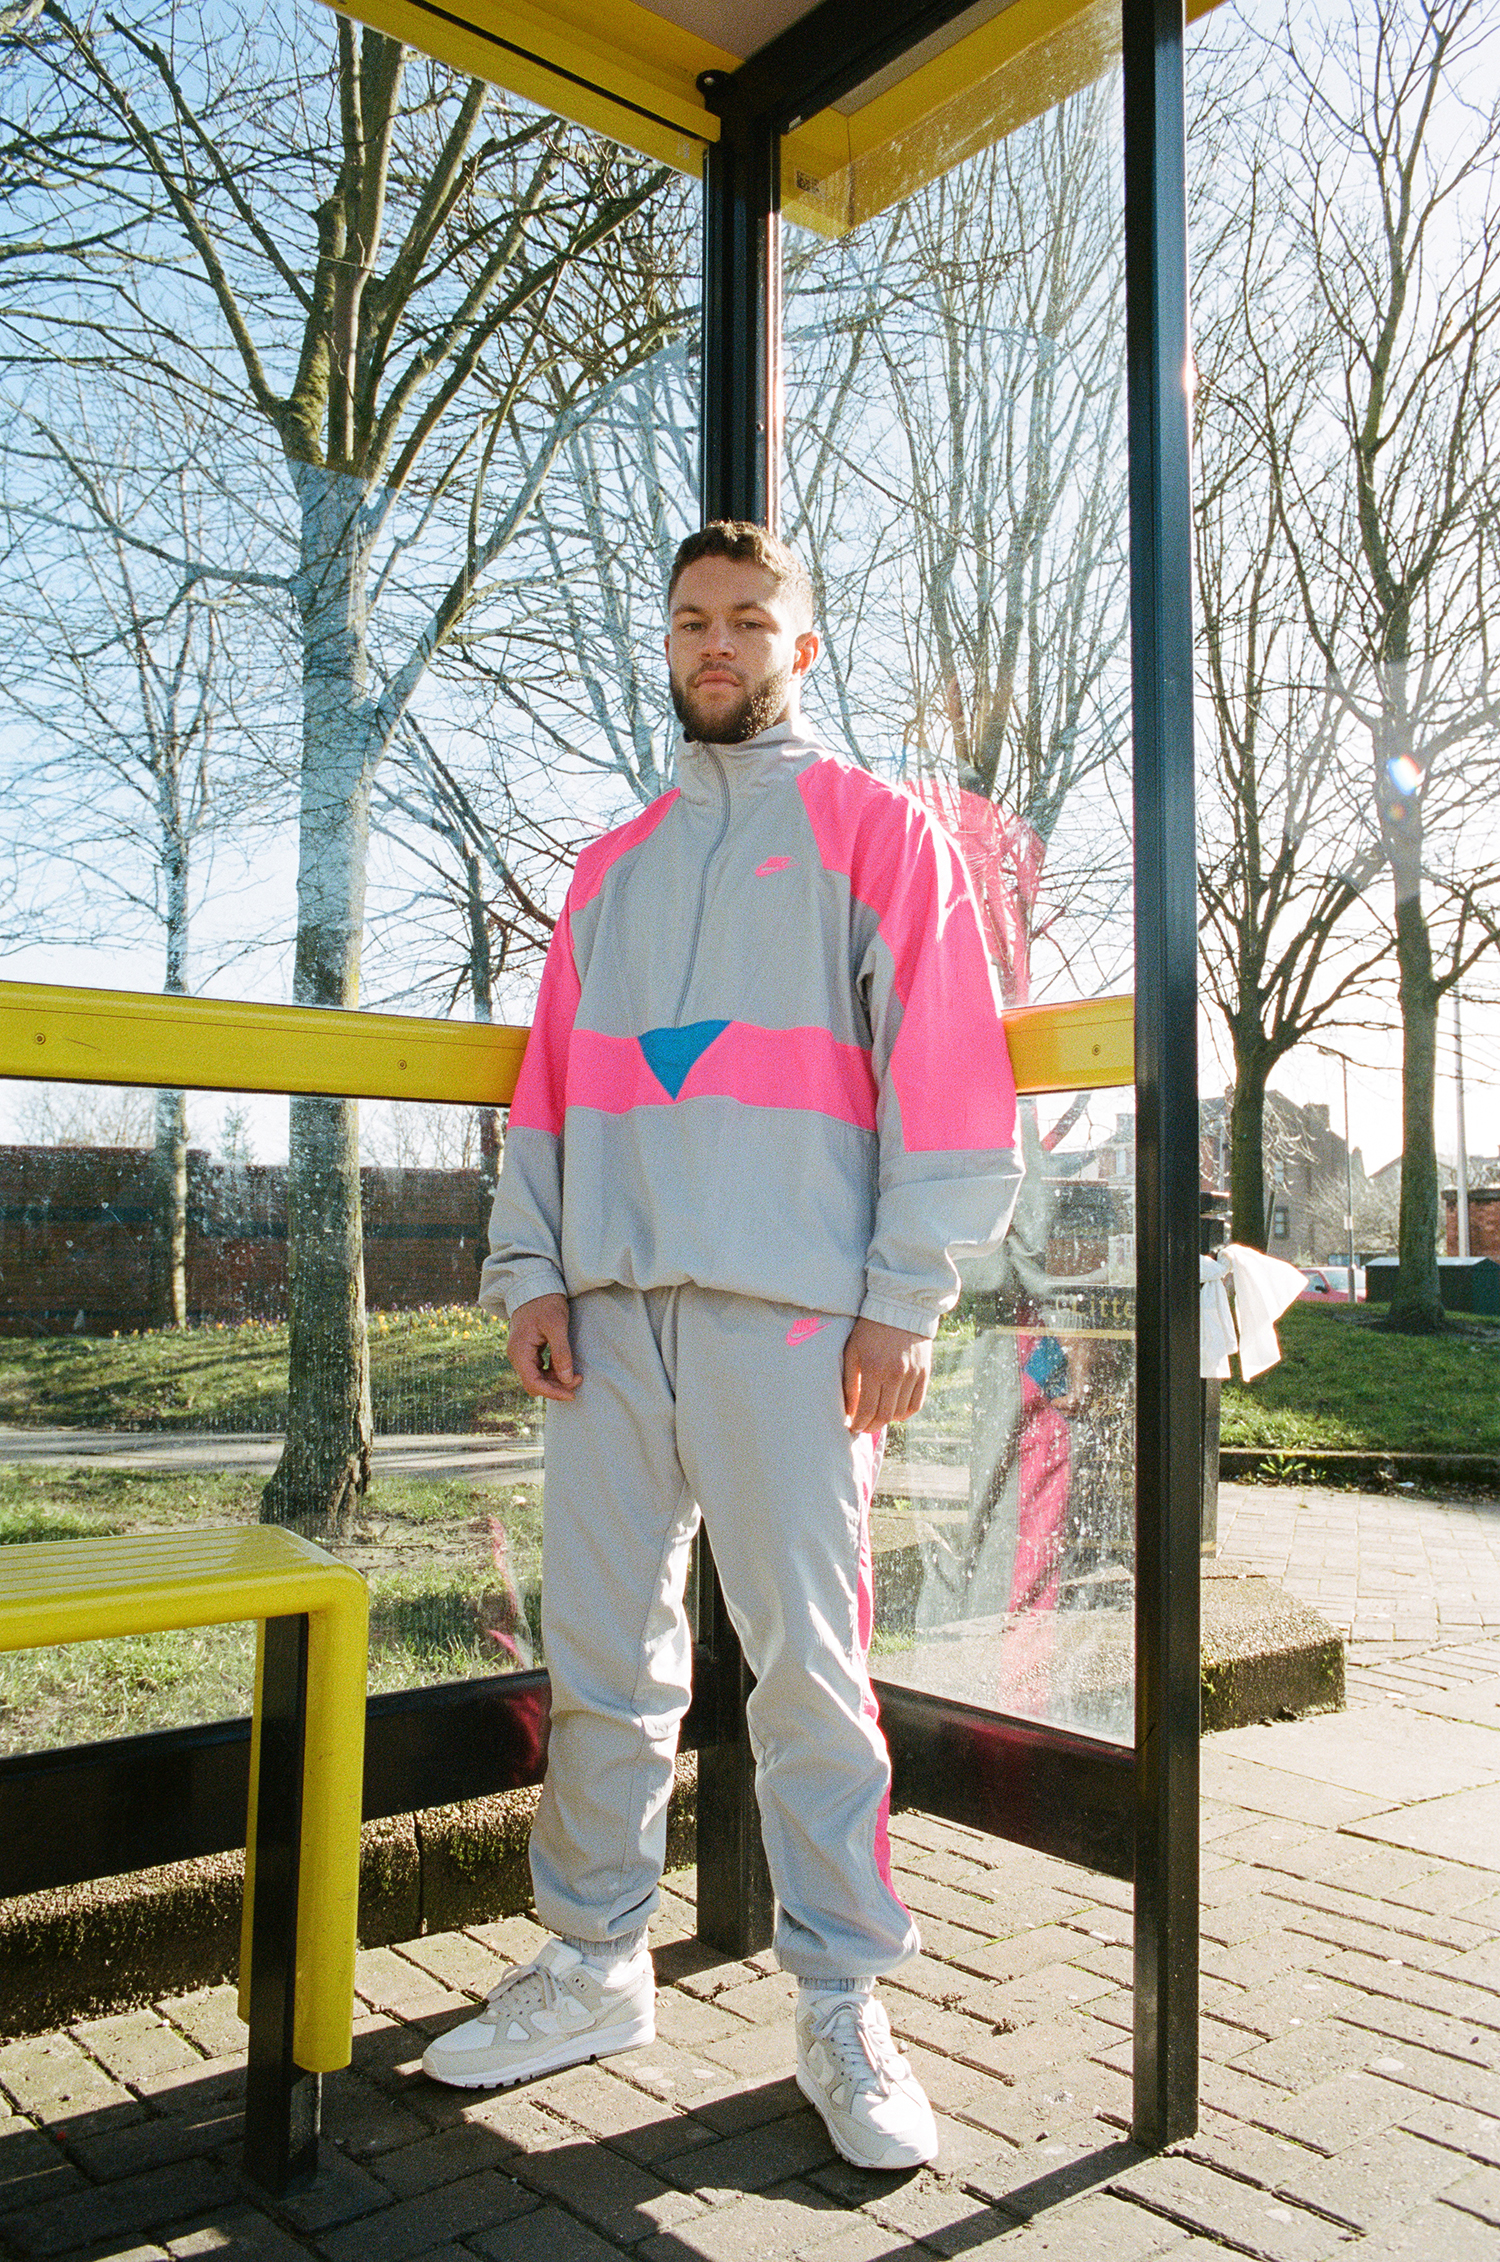 in stock 451f5 db0db Delving into their archives, Nike return for Spring with strong 90s vibes  in the shape of their Vaporwave collection. Taking inspiration from an  electronic ...